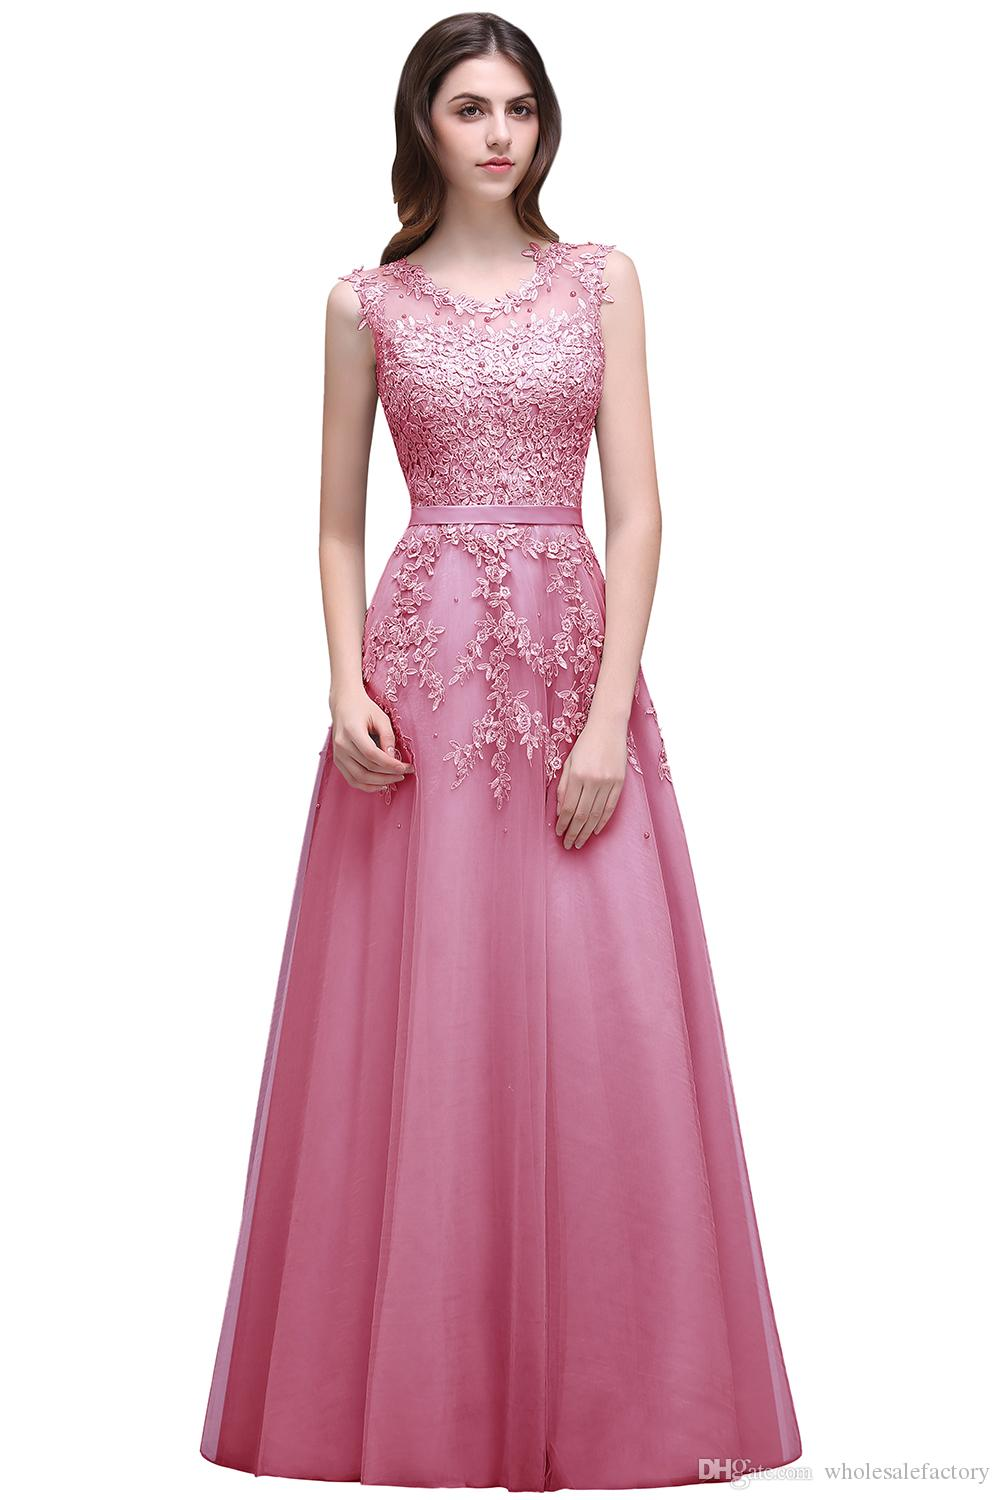 Pink Beaded A Line Evening Dress with Lace Appliques 2017 Sexy Sheer Neck Illusion Back Burgundy Long Prom Dresses Vestido de Festa Hot